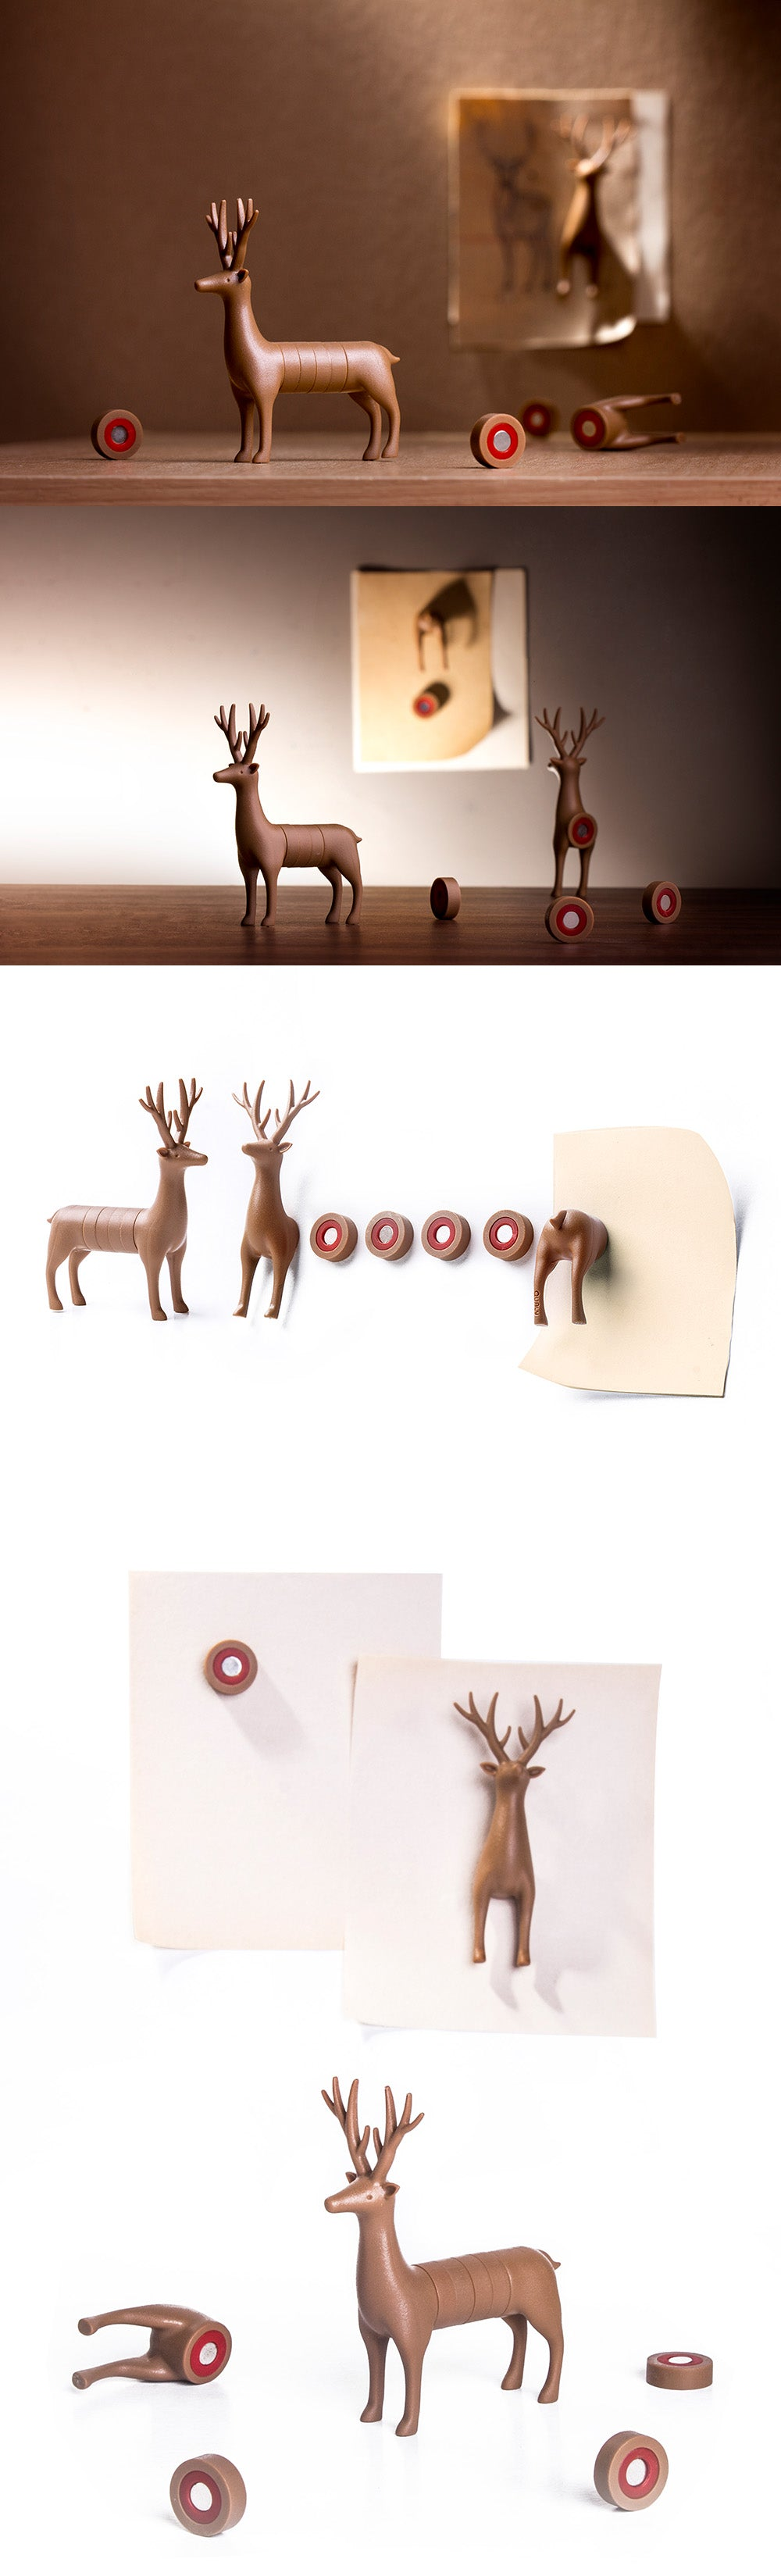 My Deer and Dachshund Magnet - Detail